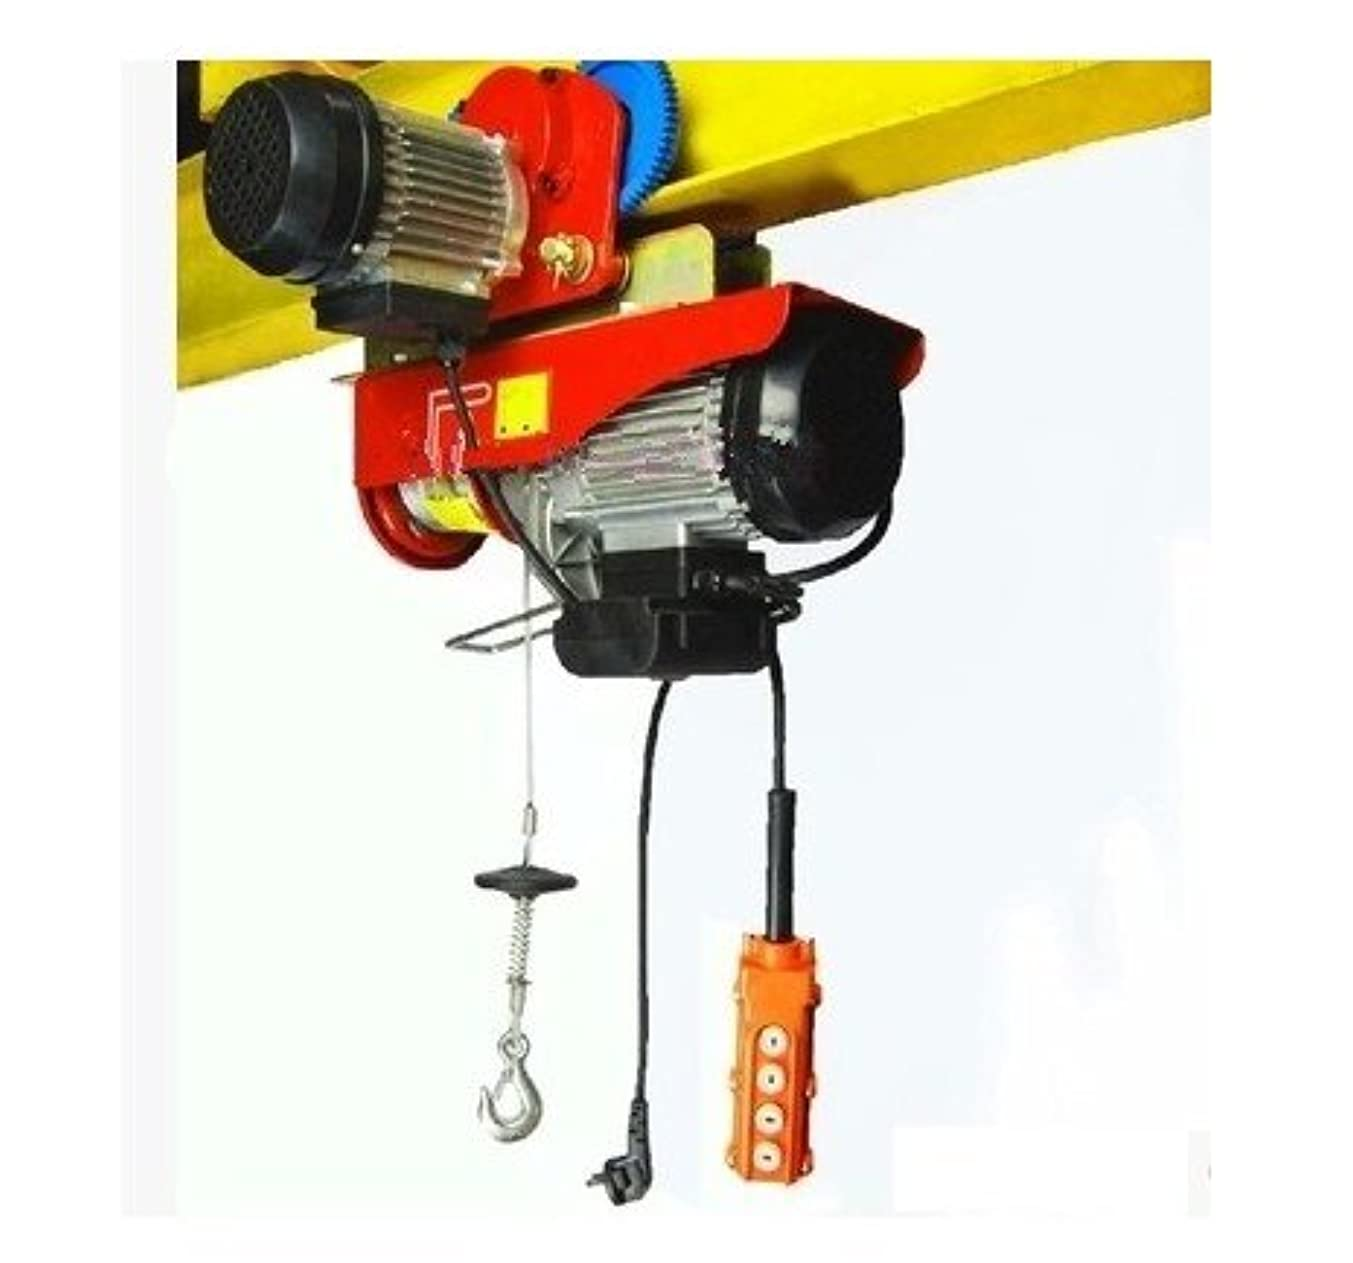 GOWE 100kg/200KG 20M, 220V 50HZ 1-phase, all-in-one mini electric wire rope hoist with trolley PA mini block, crane, lifting sling